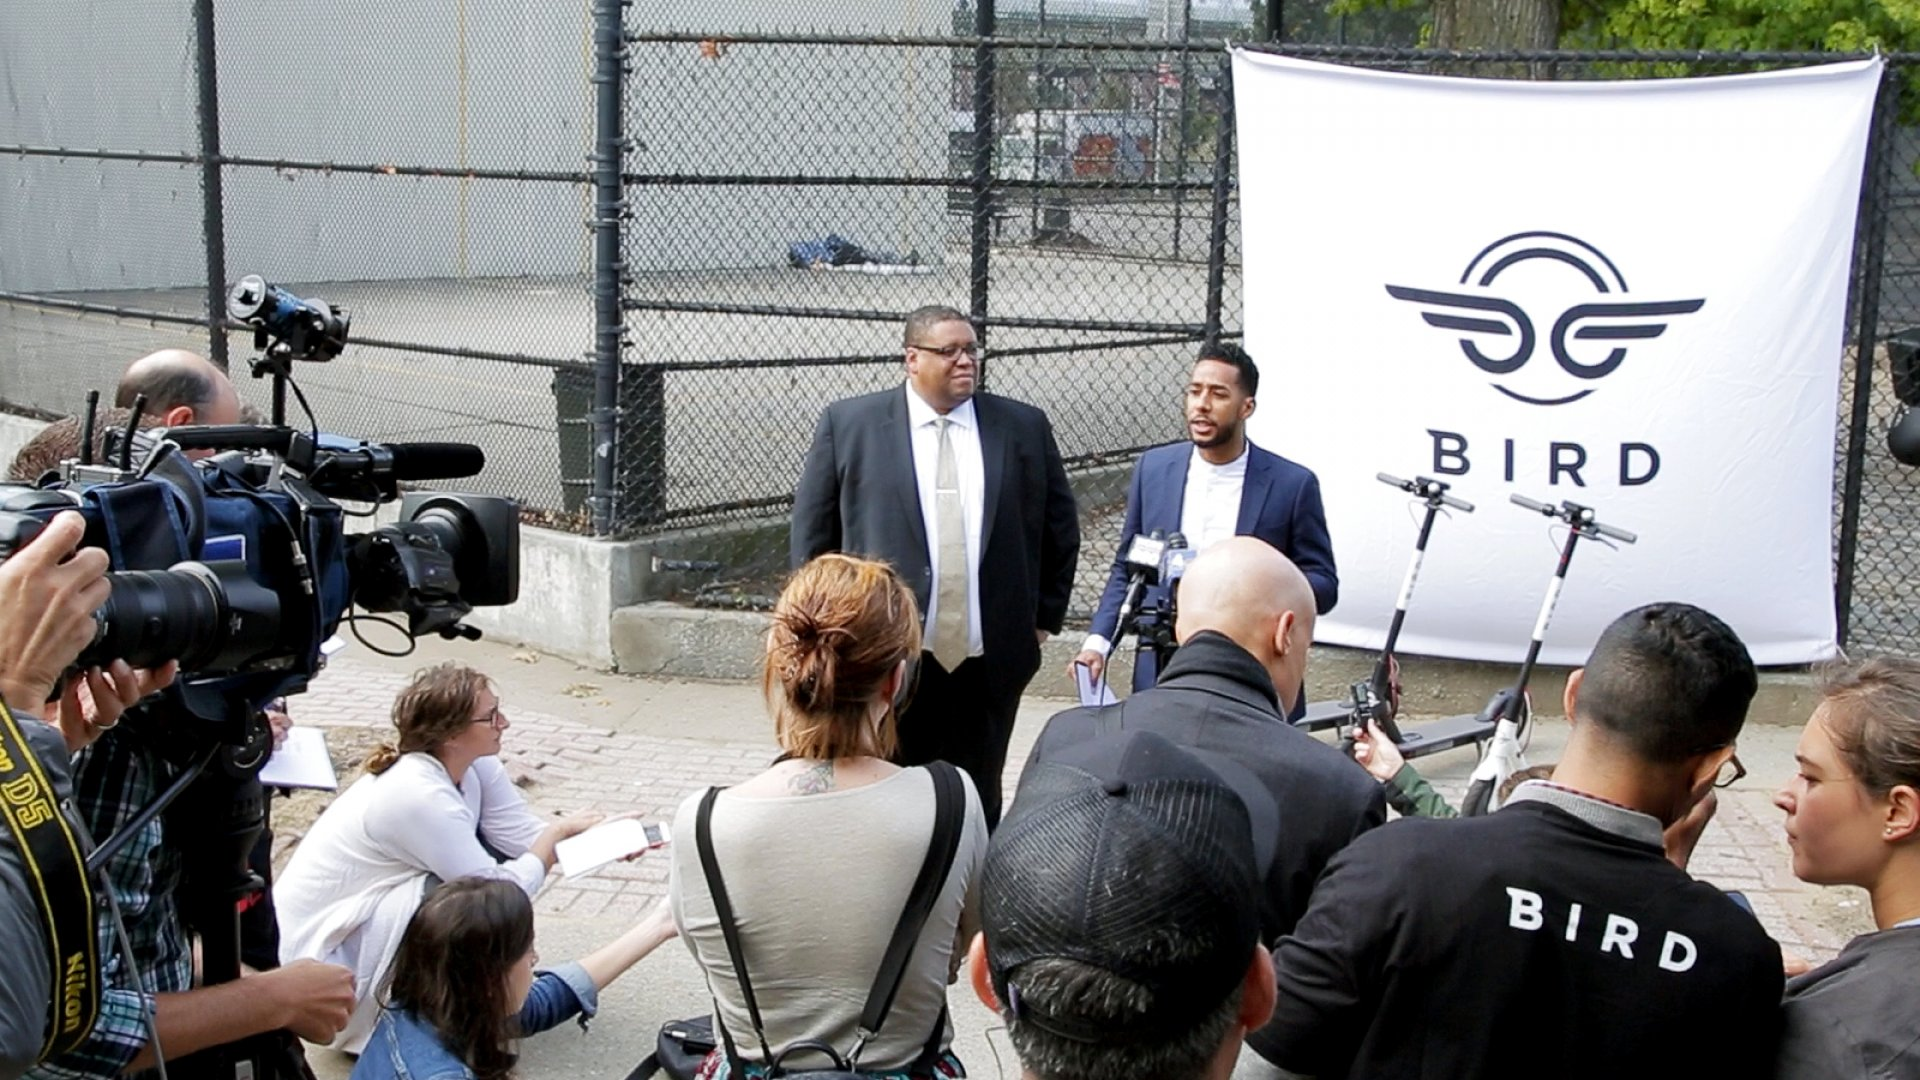 The head of Bird global safety advisory board David Strickland, left, and New York City Council member Antonio Reynoso, right, advocate for New York to change its laws to legalize e-scooters at a press conference in Williamsburg, Brooklyn on Sept. 24, 2018.